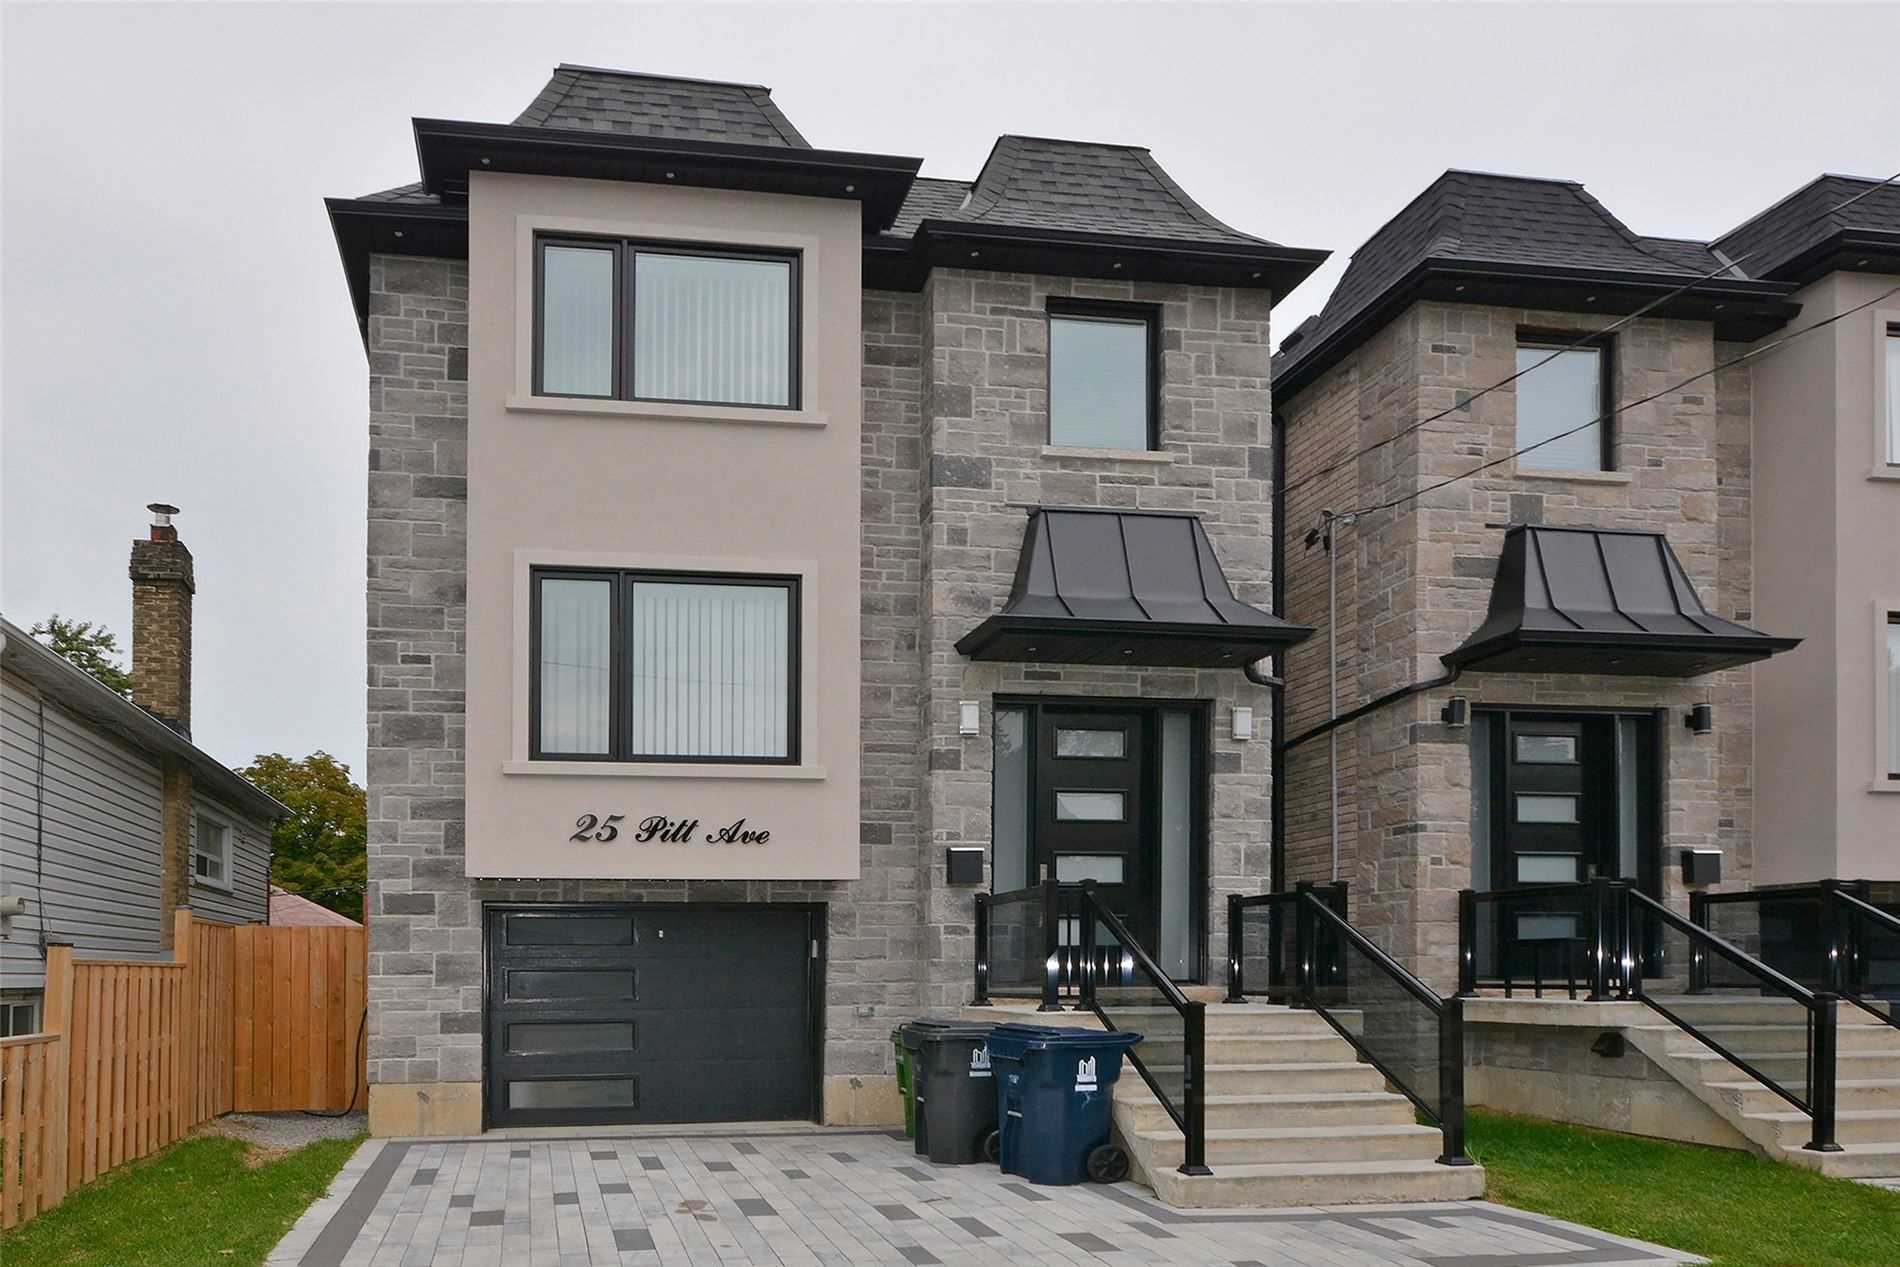 For Sale: 25 Pitt Avenue, Toronto, ON | 4 Bed, 4 Bath House for $1379900.00. See 19 photos!